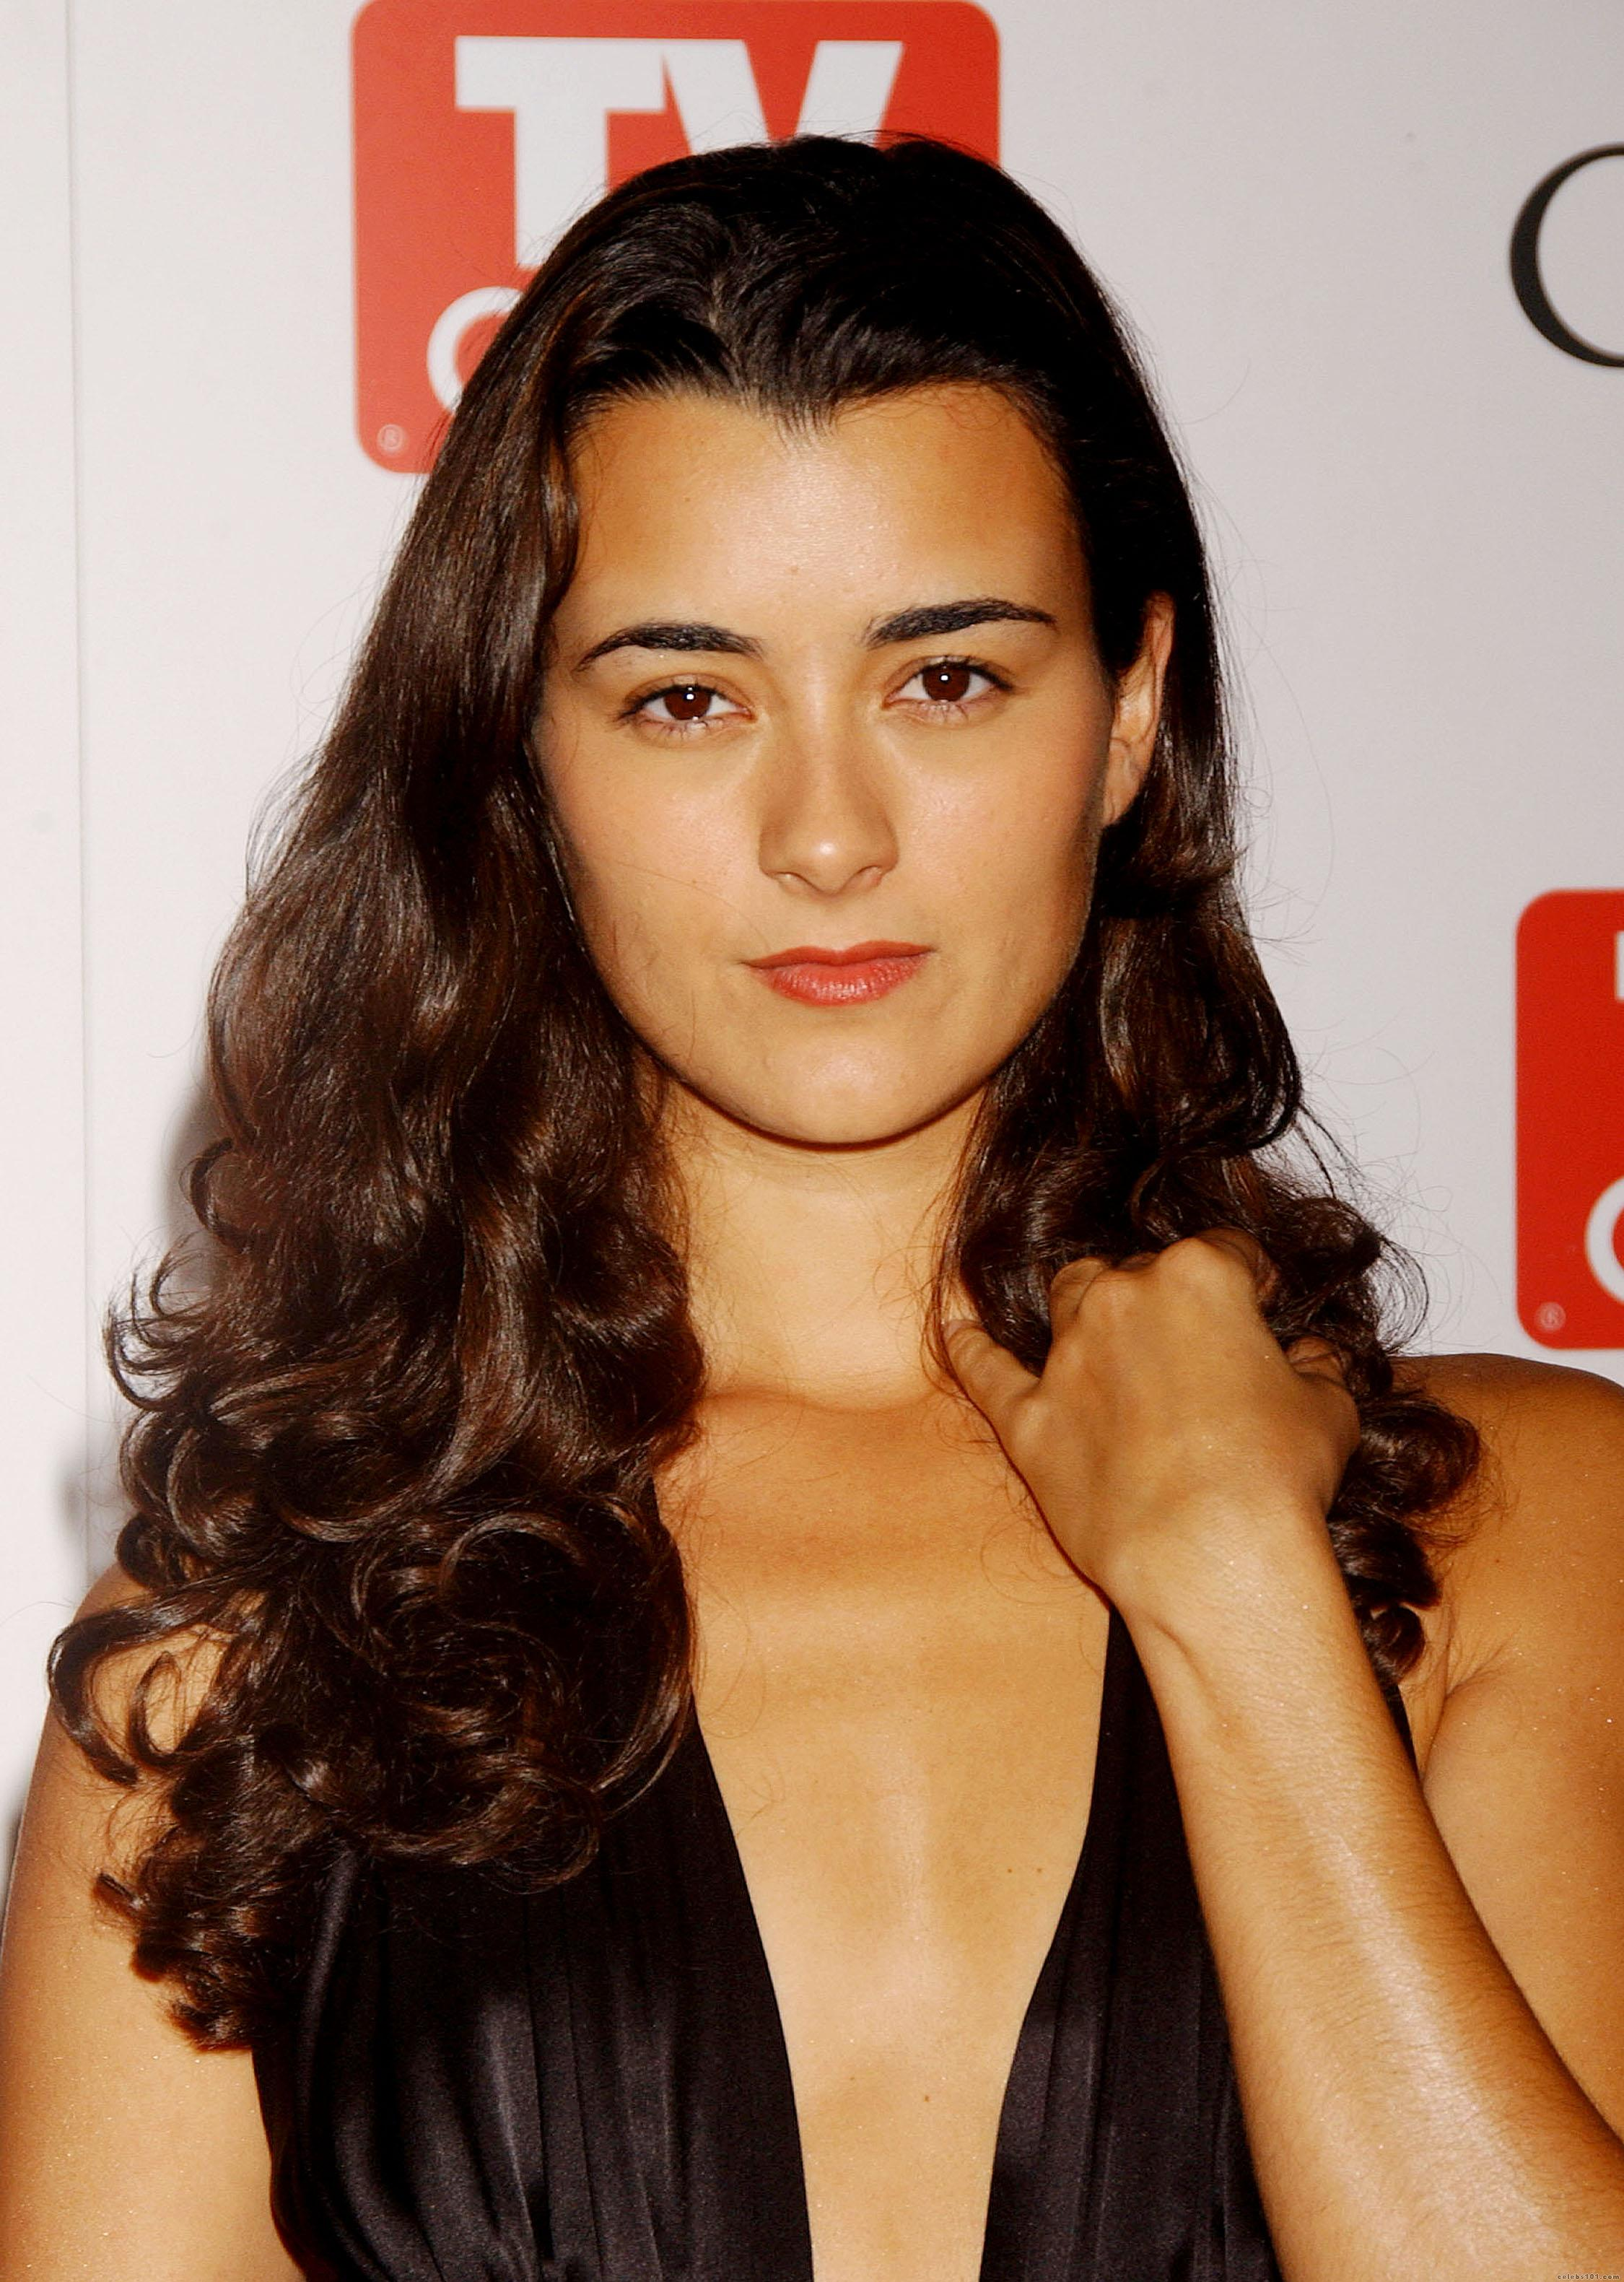 Cote De Pablo: Yay or Nay